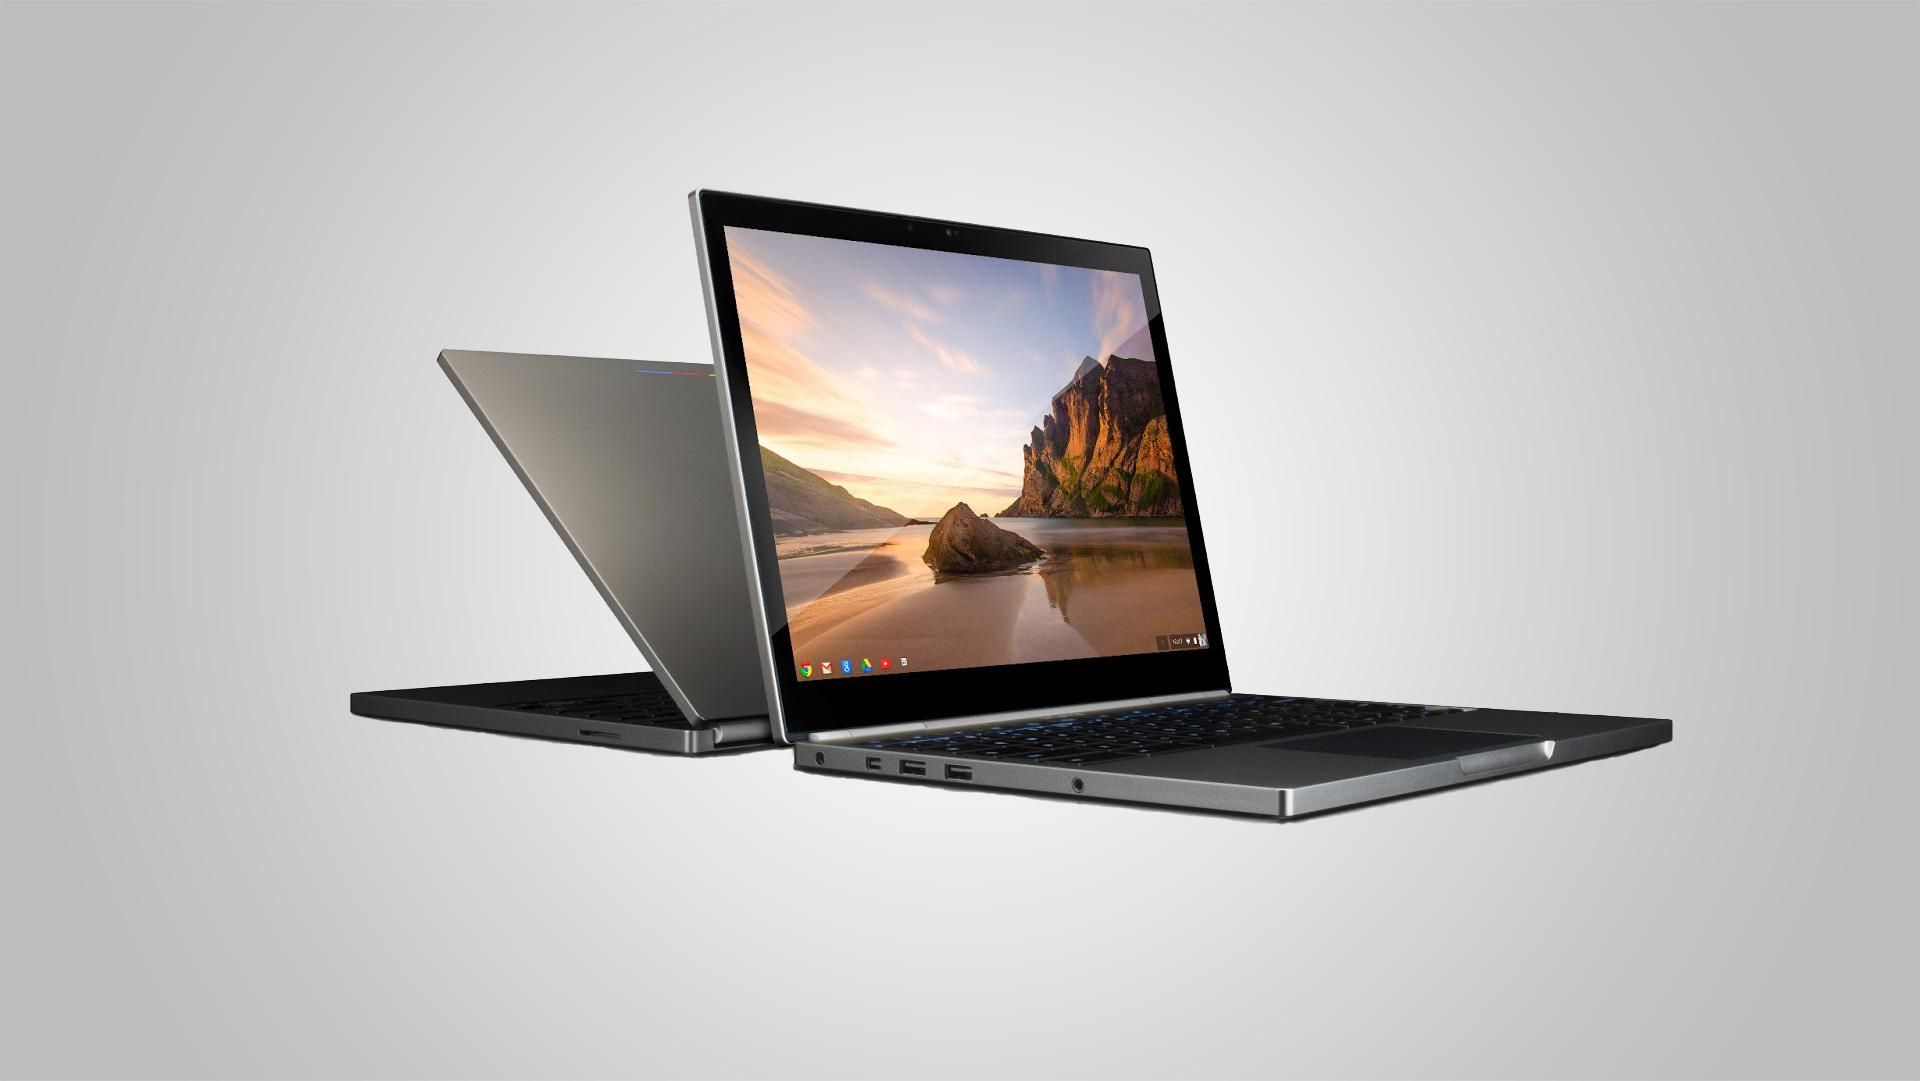 The New Google Chromebook Pixel Unveiled!